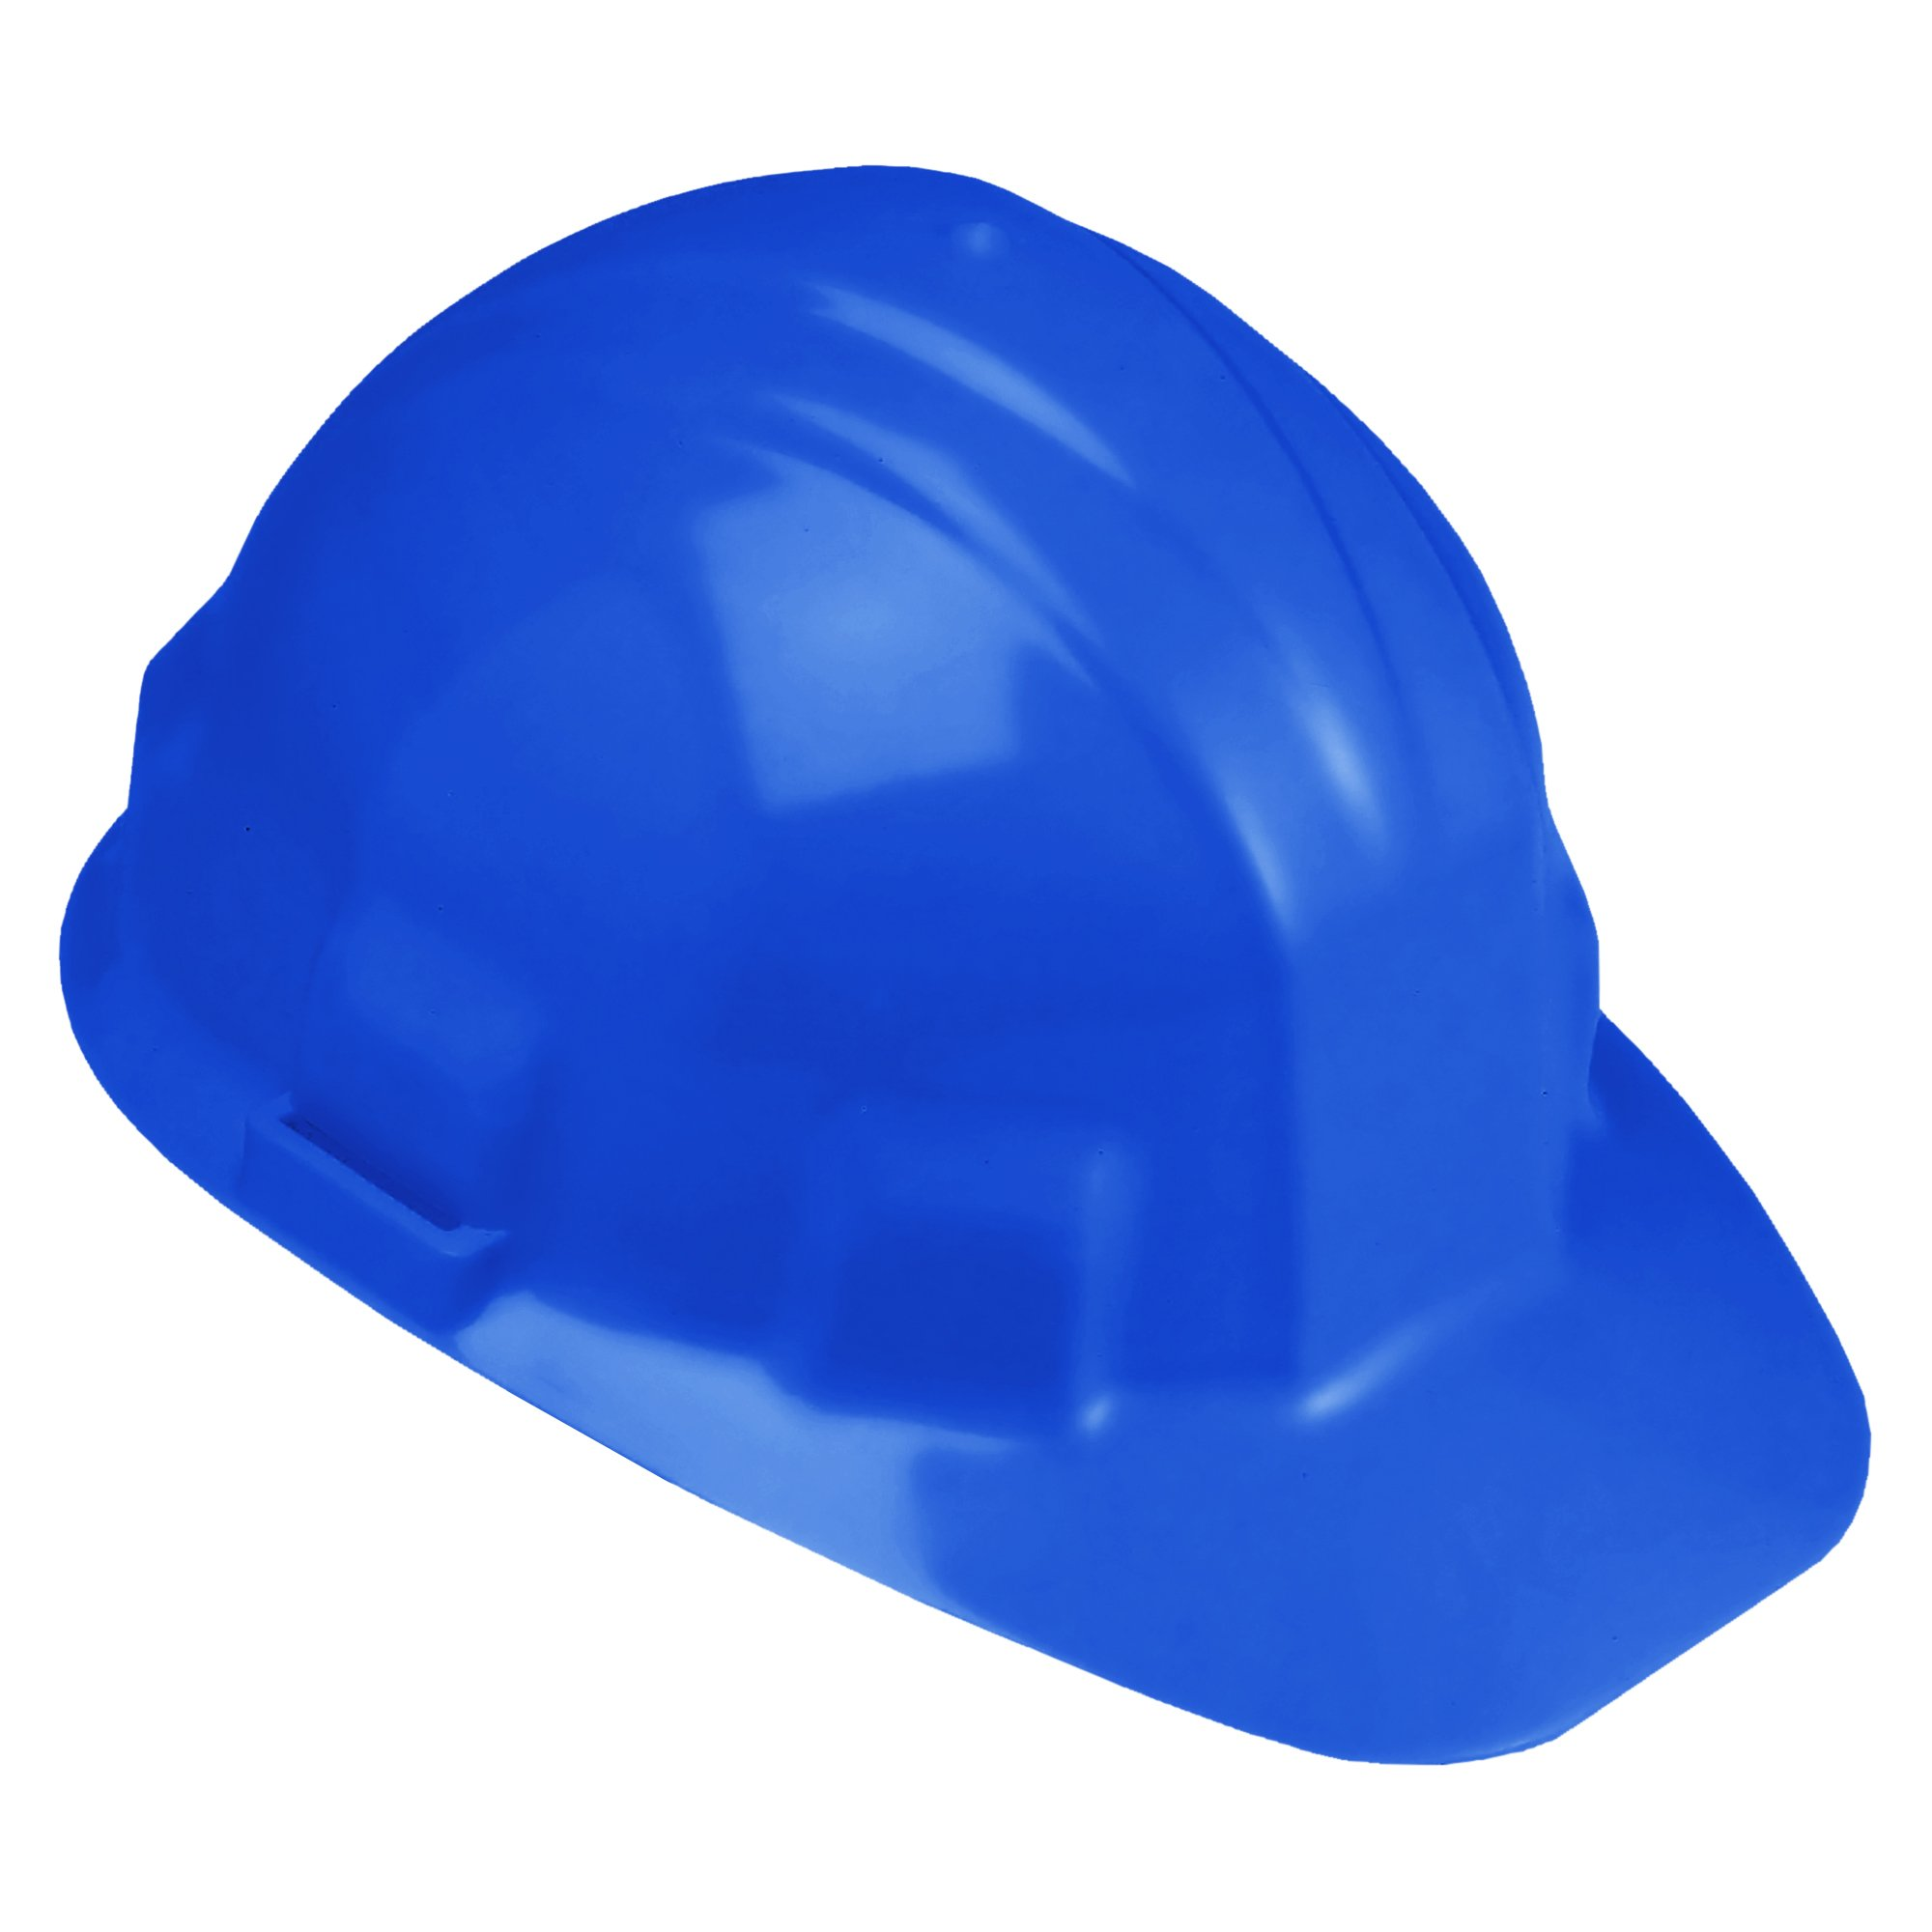 Jackson Safety Sentry III Hard Hat (14416), 6-Point Ratchet Suspension, Low Profile Safety Cap, Blue, 12 / Case